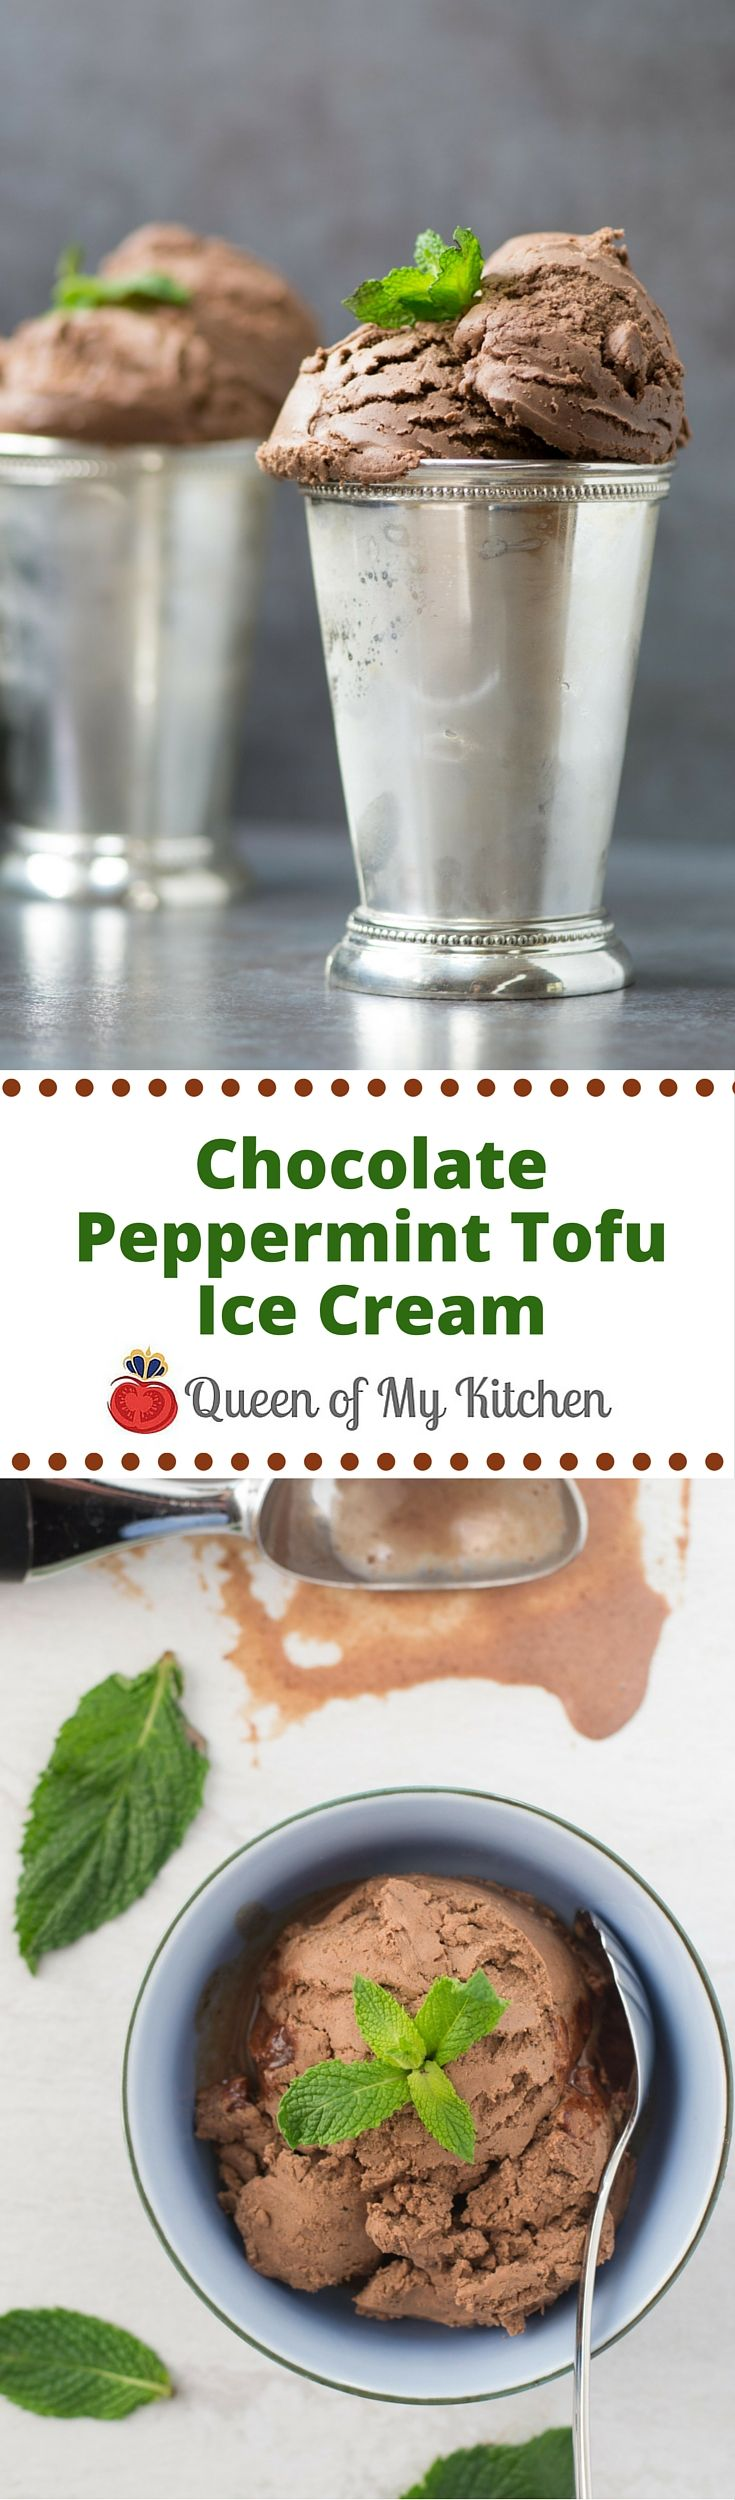 Chocolate Peppermint Tofu Ice Cream is vegan ice cream that tastes like a frozen thin mint cookie. Made with tofu and almond milk.